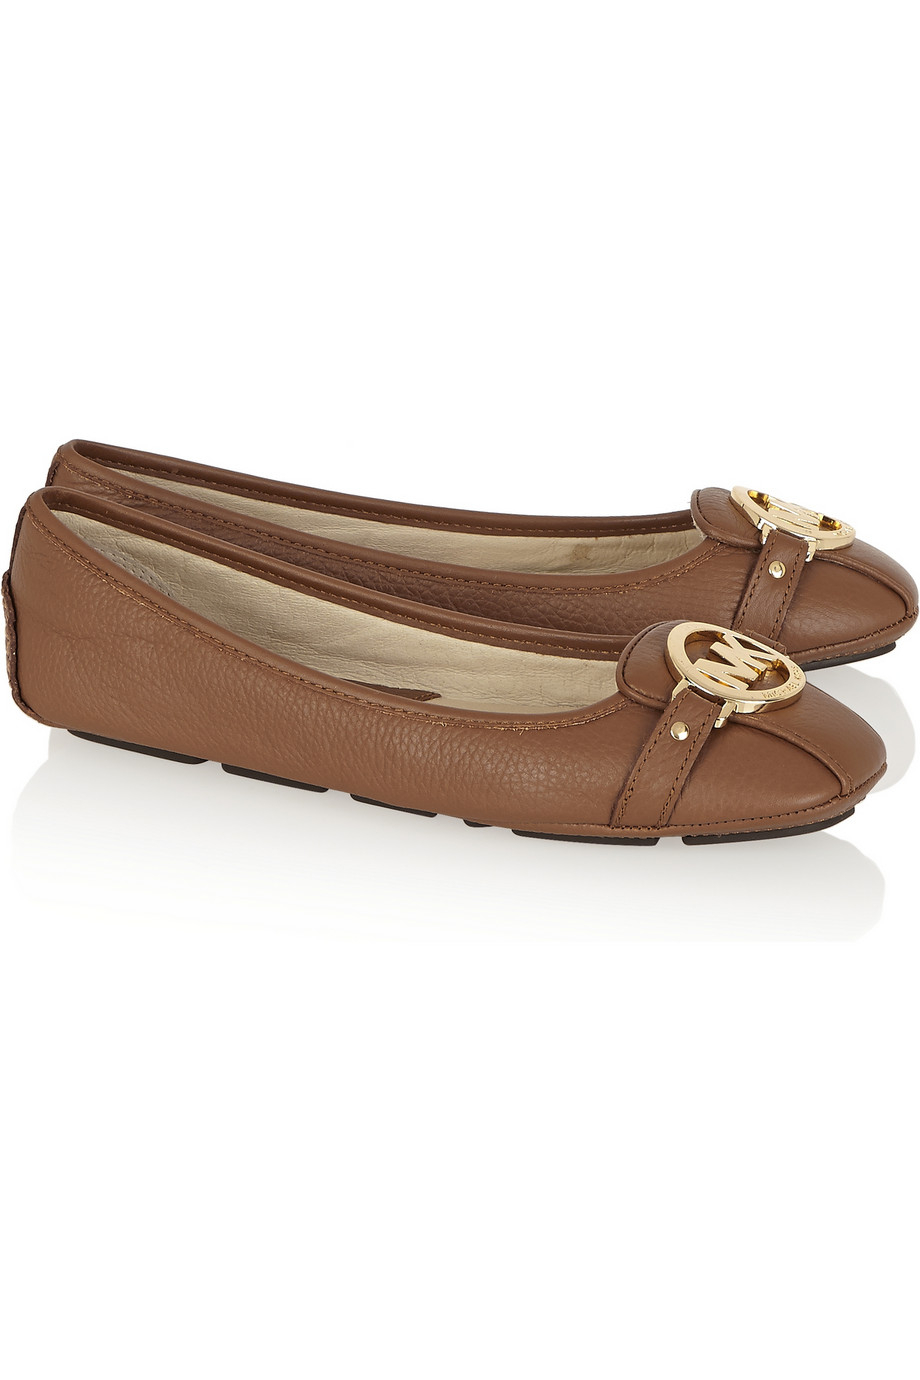 Michael Michael Kors Fulton Textured Leather Ballet Flats